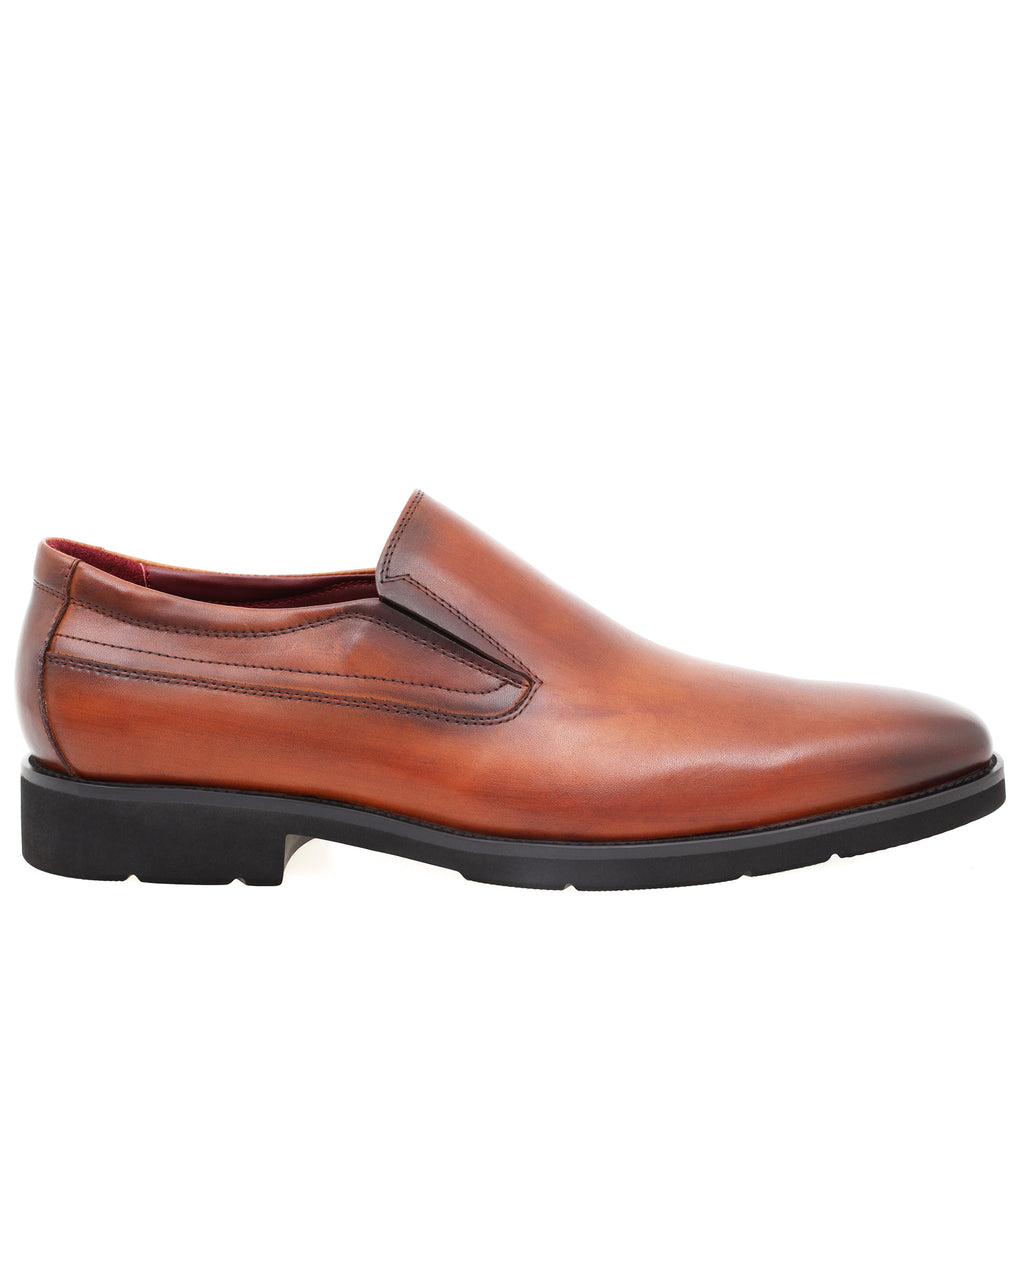 Tomaz HF015 Formal Slip-Ons Loafers (Brown)